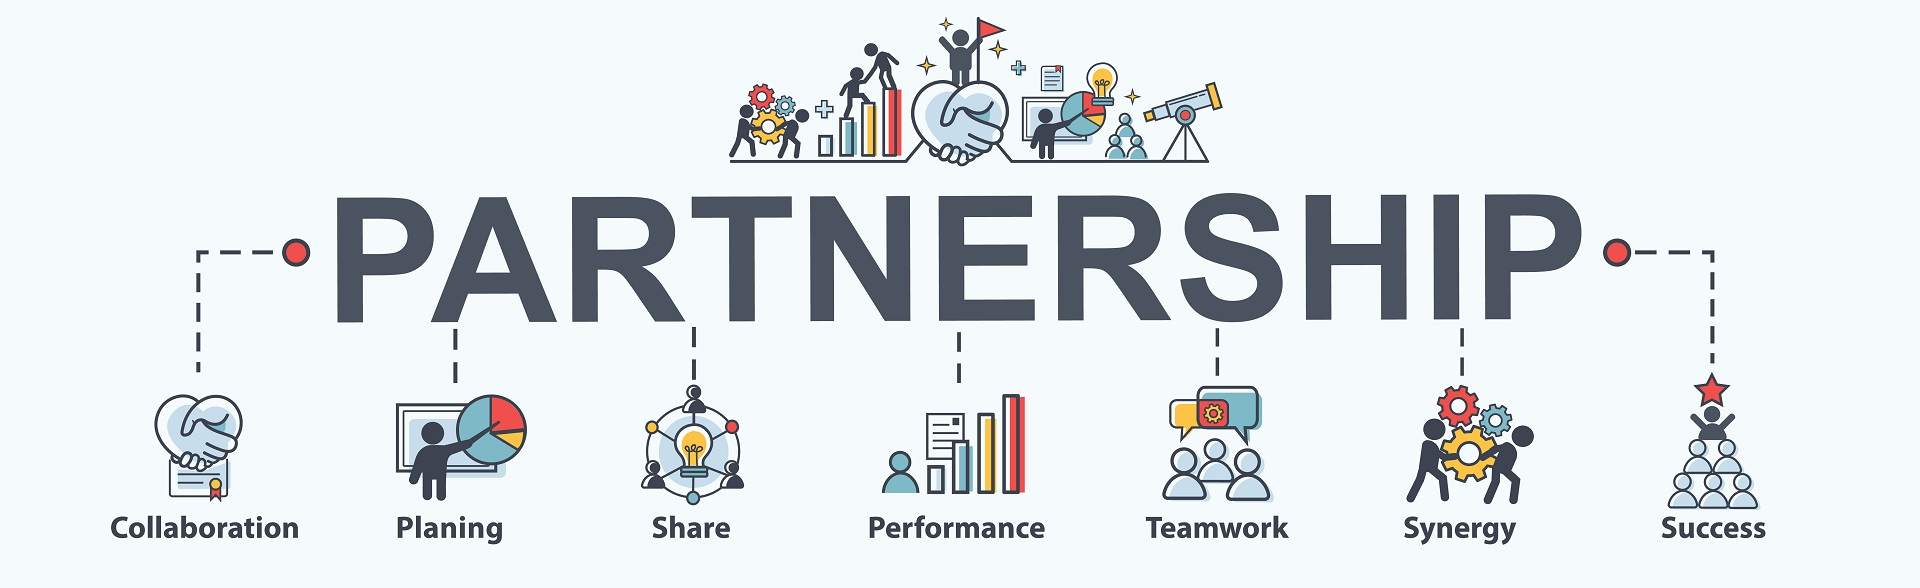 opsi partneship e teamwork